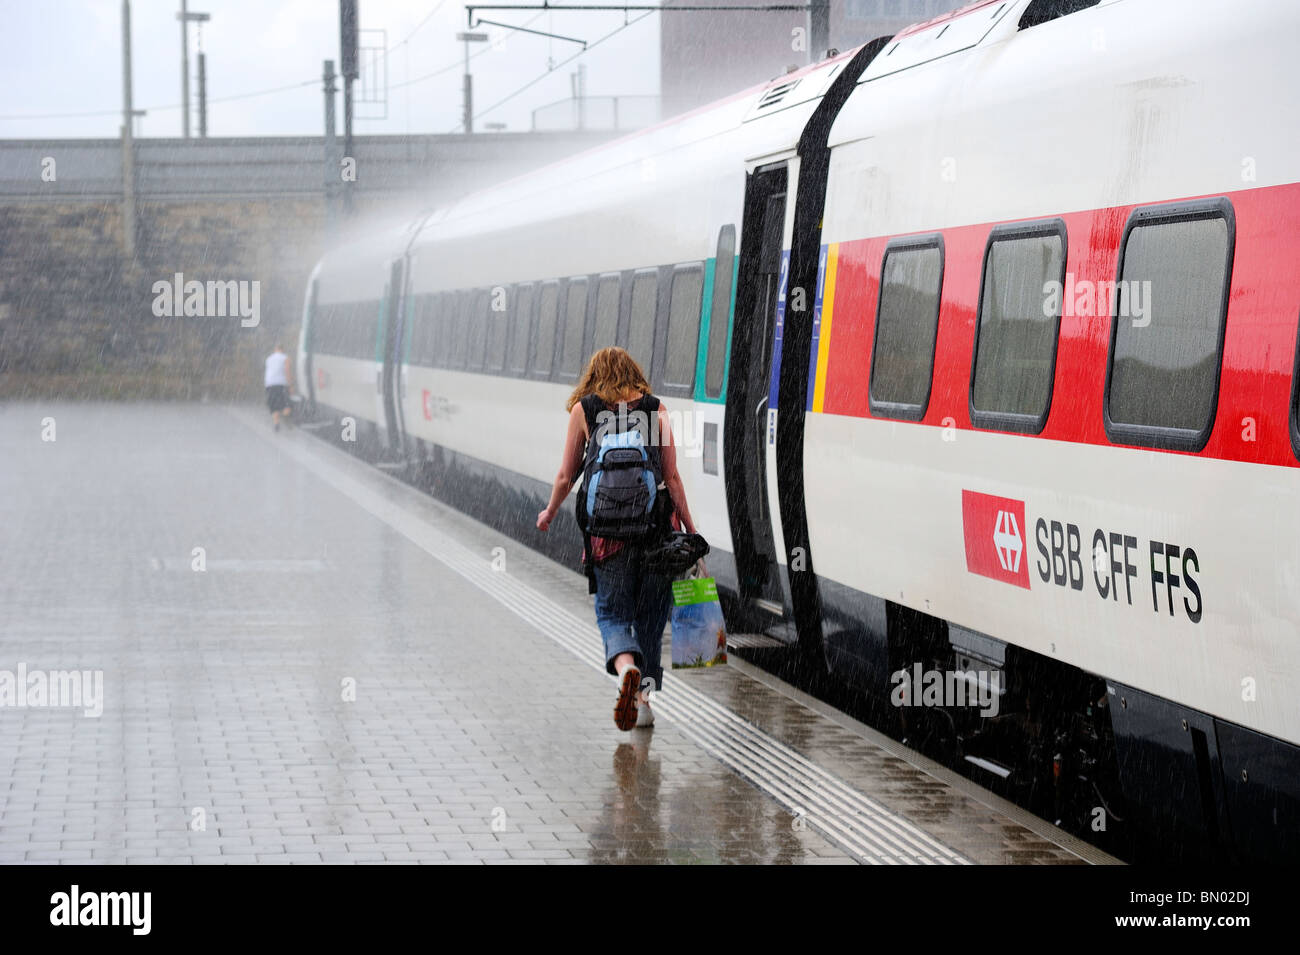 A passenger running through a torrential downpour at Basel railway station. - Stock Image